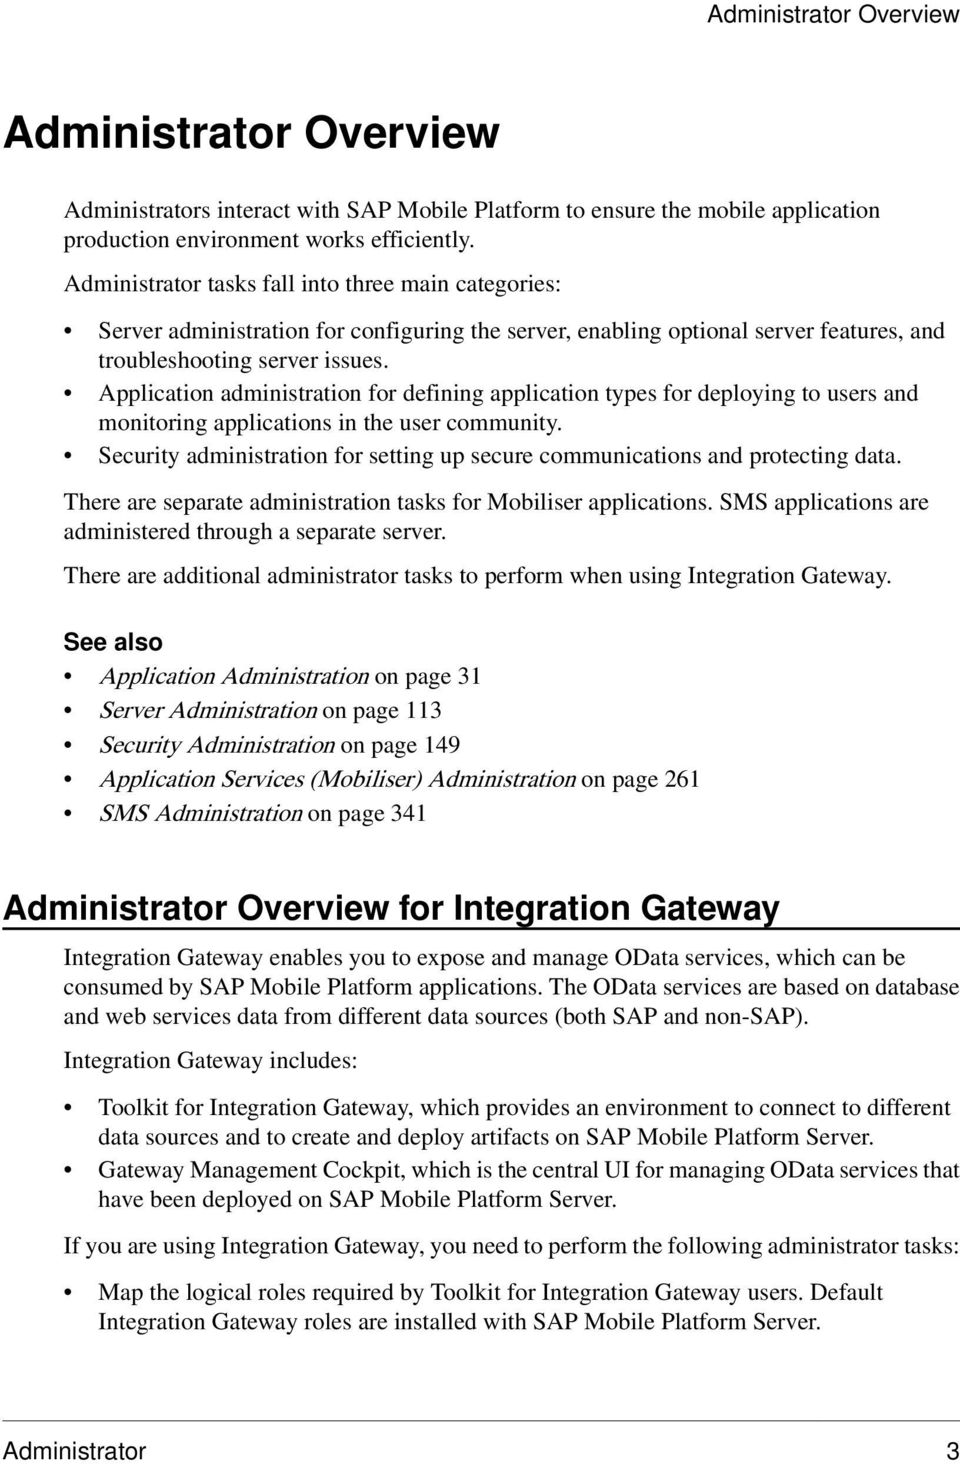 Application administration for defining application types for deploying to users and monitoring applications in the user community.